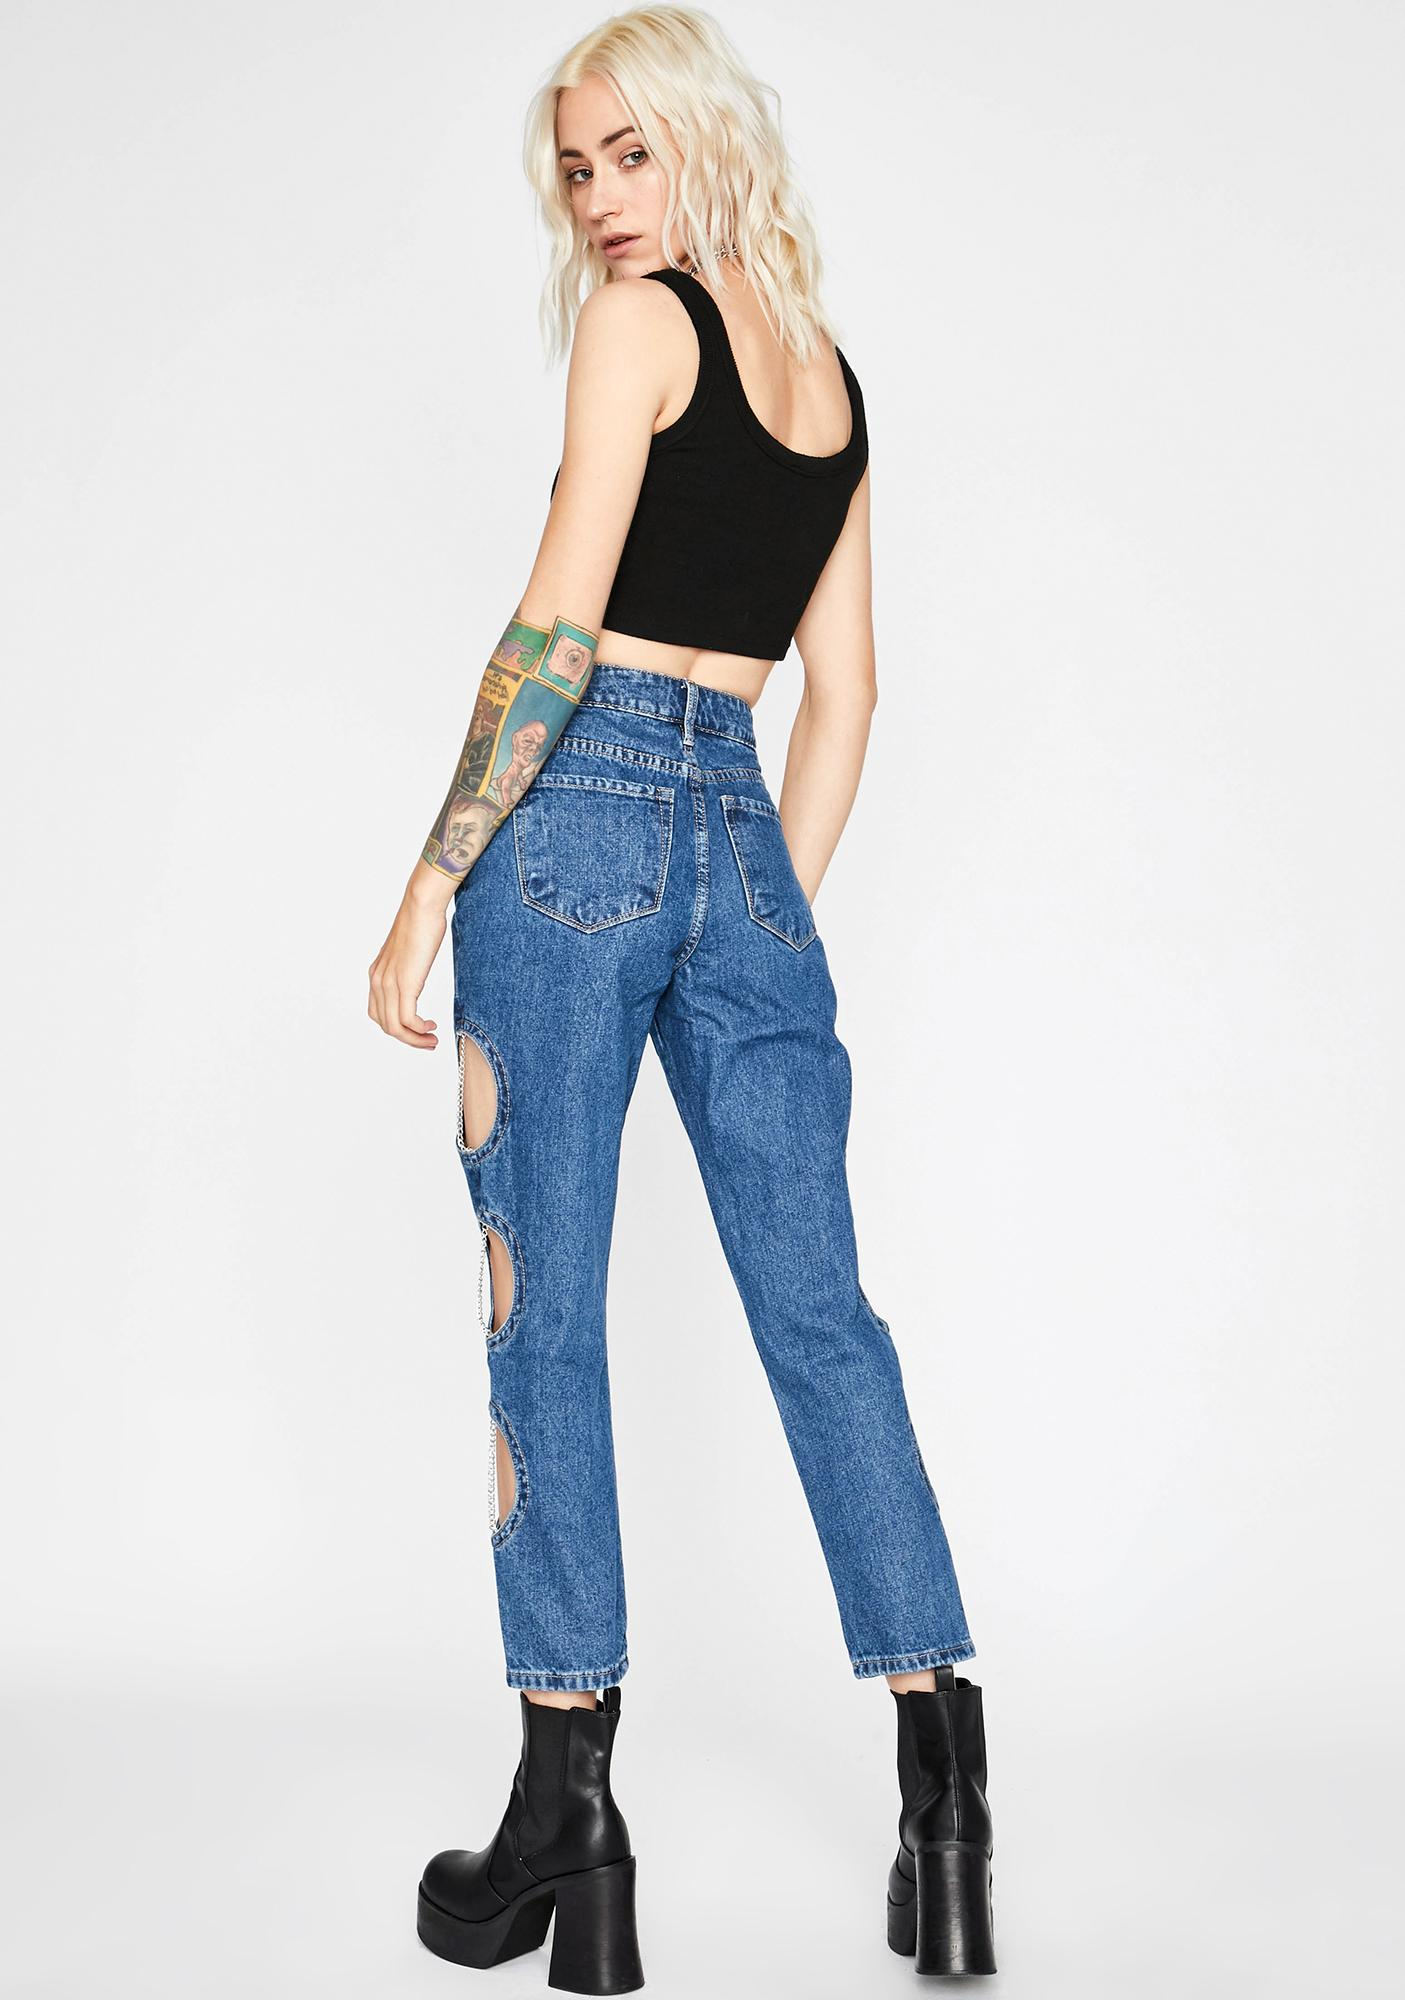 Not Too Naughty Cut-Out Jeans